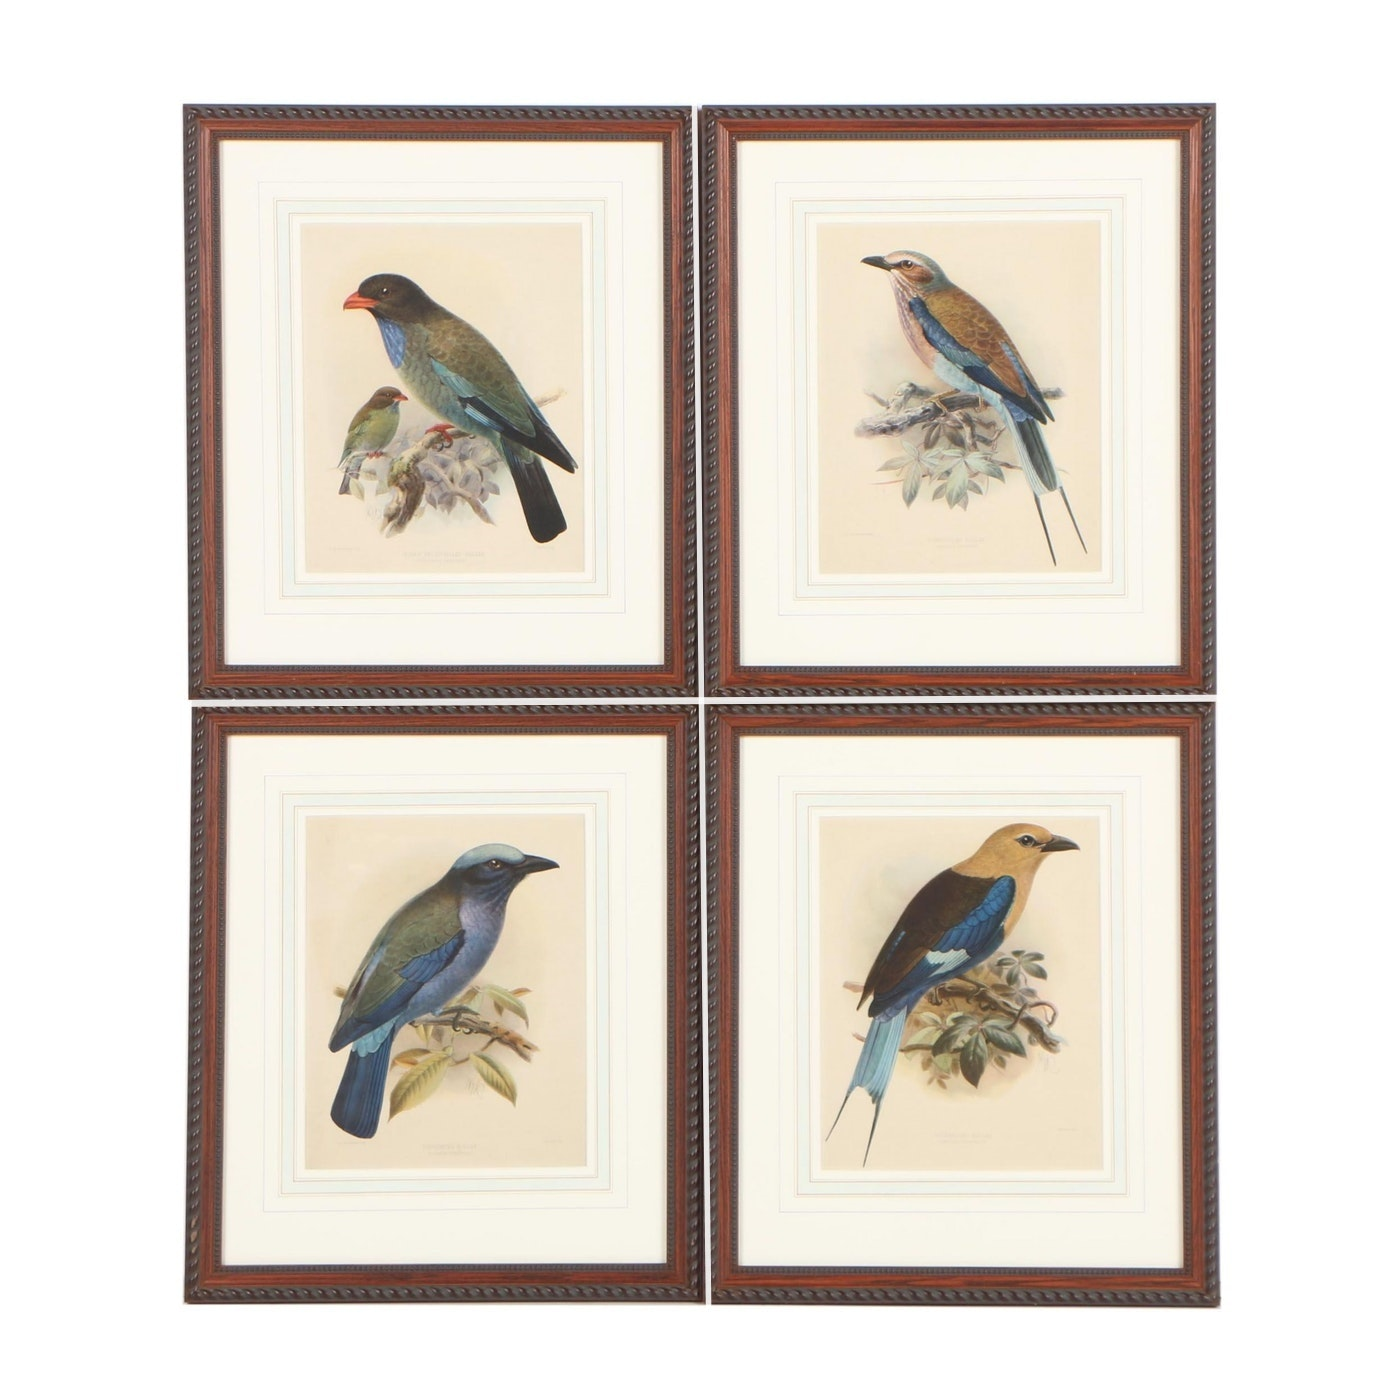 Offset Lithographs after John Gerrard Keulemans